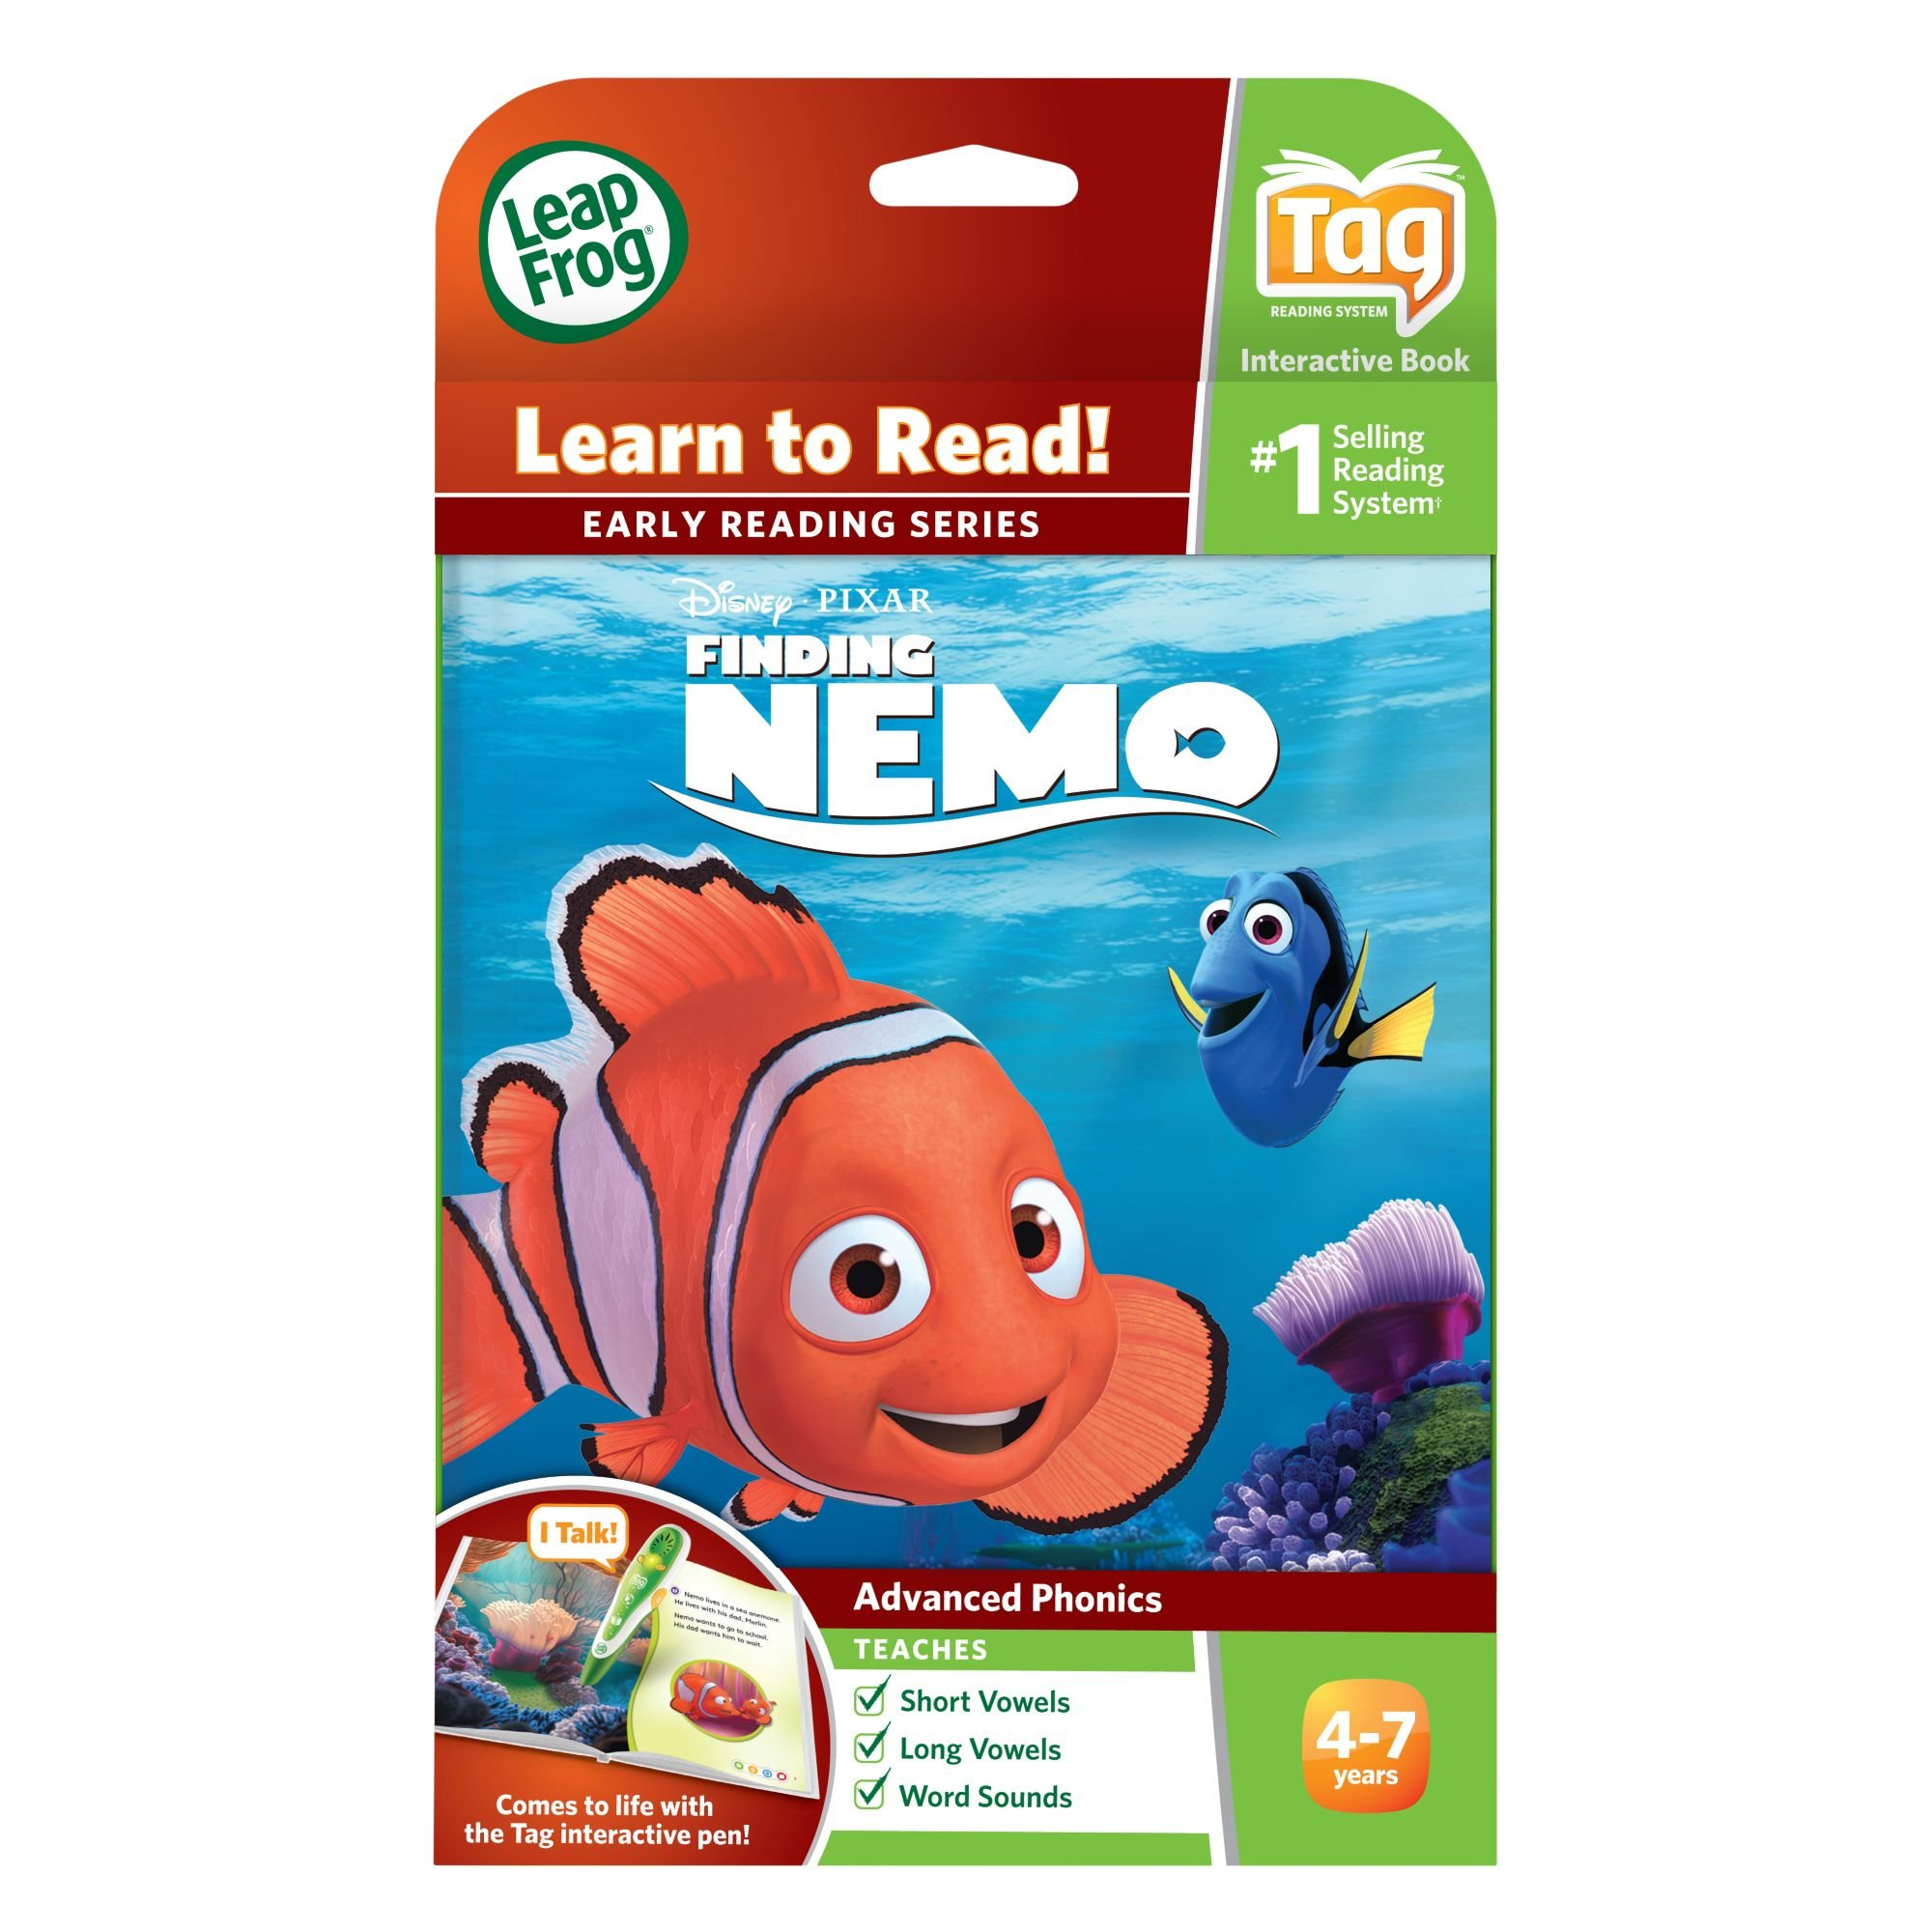 LeapFrog LeapReader Book: Disney·Pixar Finding Nemo, Lost and Found (works with Tag) by LeapFrog (Image #4)